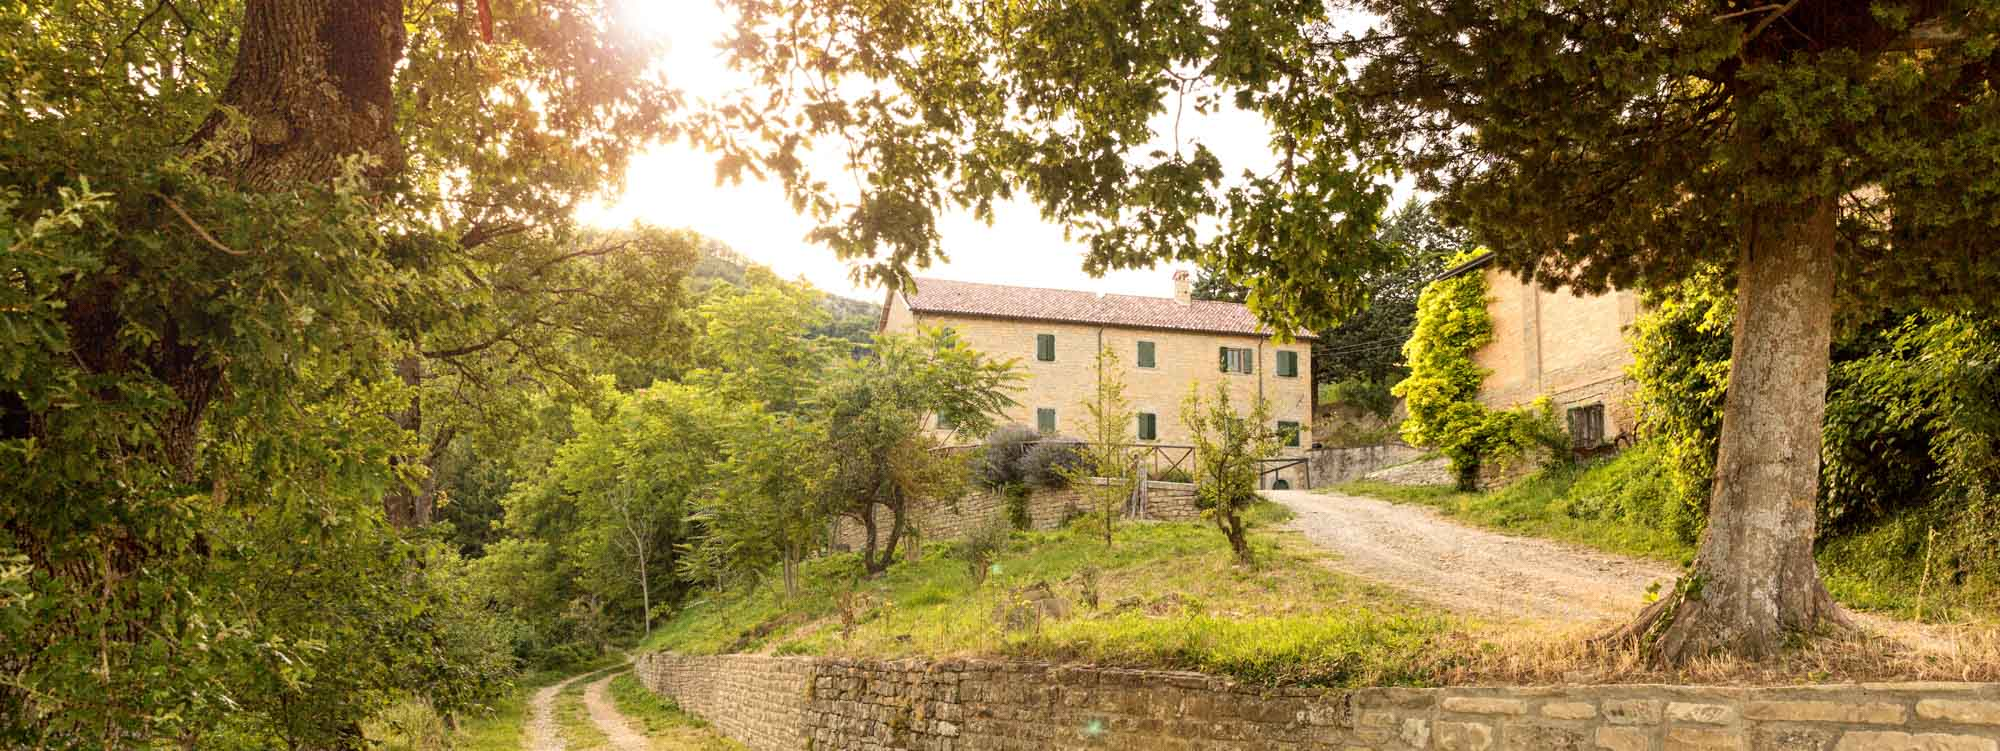 AGRITURISMO_BED_AND_BREAKFAST_BB_PREMILCUORE_PERNOTTO_CAVALLO1